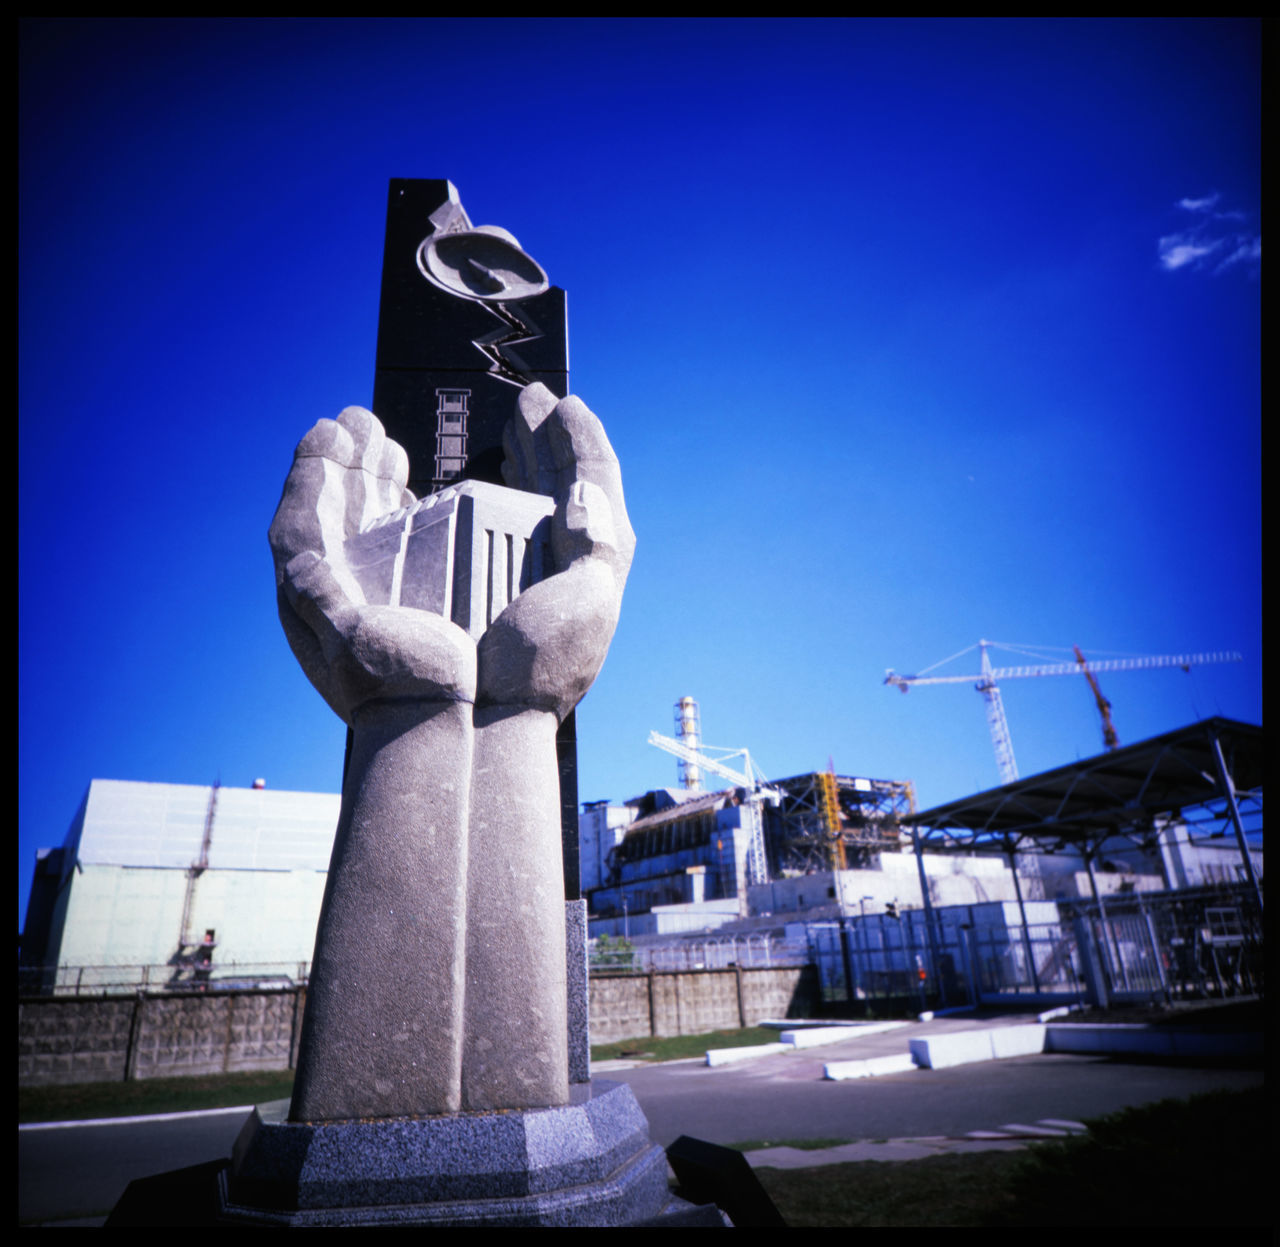 Reactor No 4 2016 Analogue Photography Catastrophy Chernobyl Chernobyl Exclusion Zone Explosion Failure  Gau Lomography Mankind Medium Format Monument Nature Nuclear Catastrophy Nuclear Power Outdoors Polution Radioactive Reactor No.4 Sarcophagus Slidefilm Soviet Union Technology Ukraine